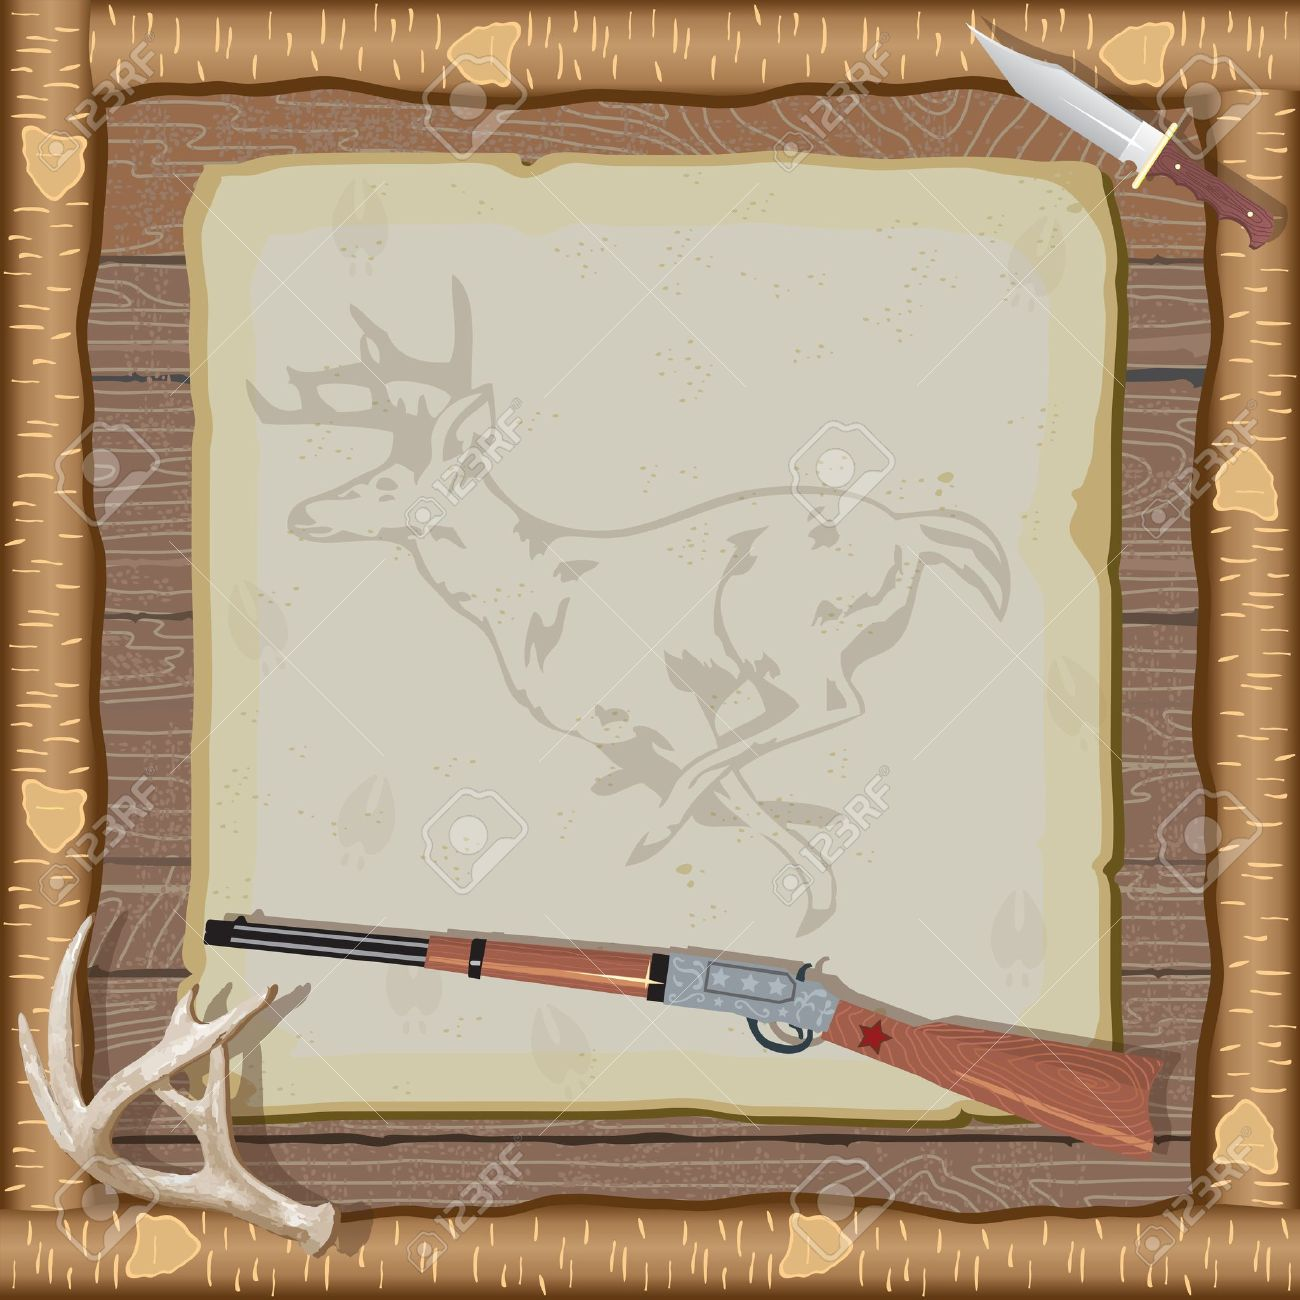 Rustic Hunting Party Invitation With Rifle Hunting Knife Deer – Hunting Party Invitations